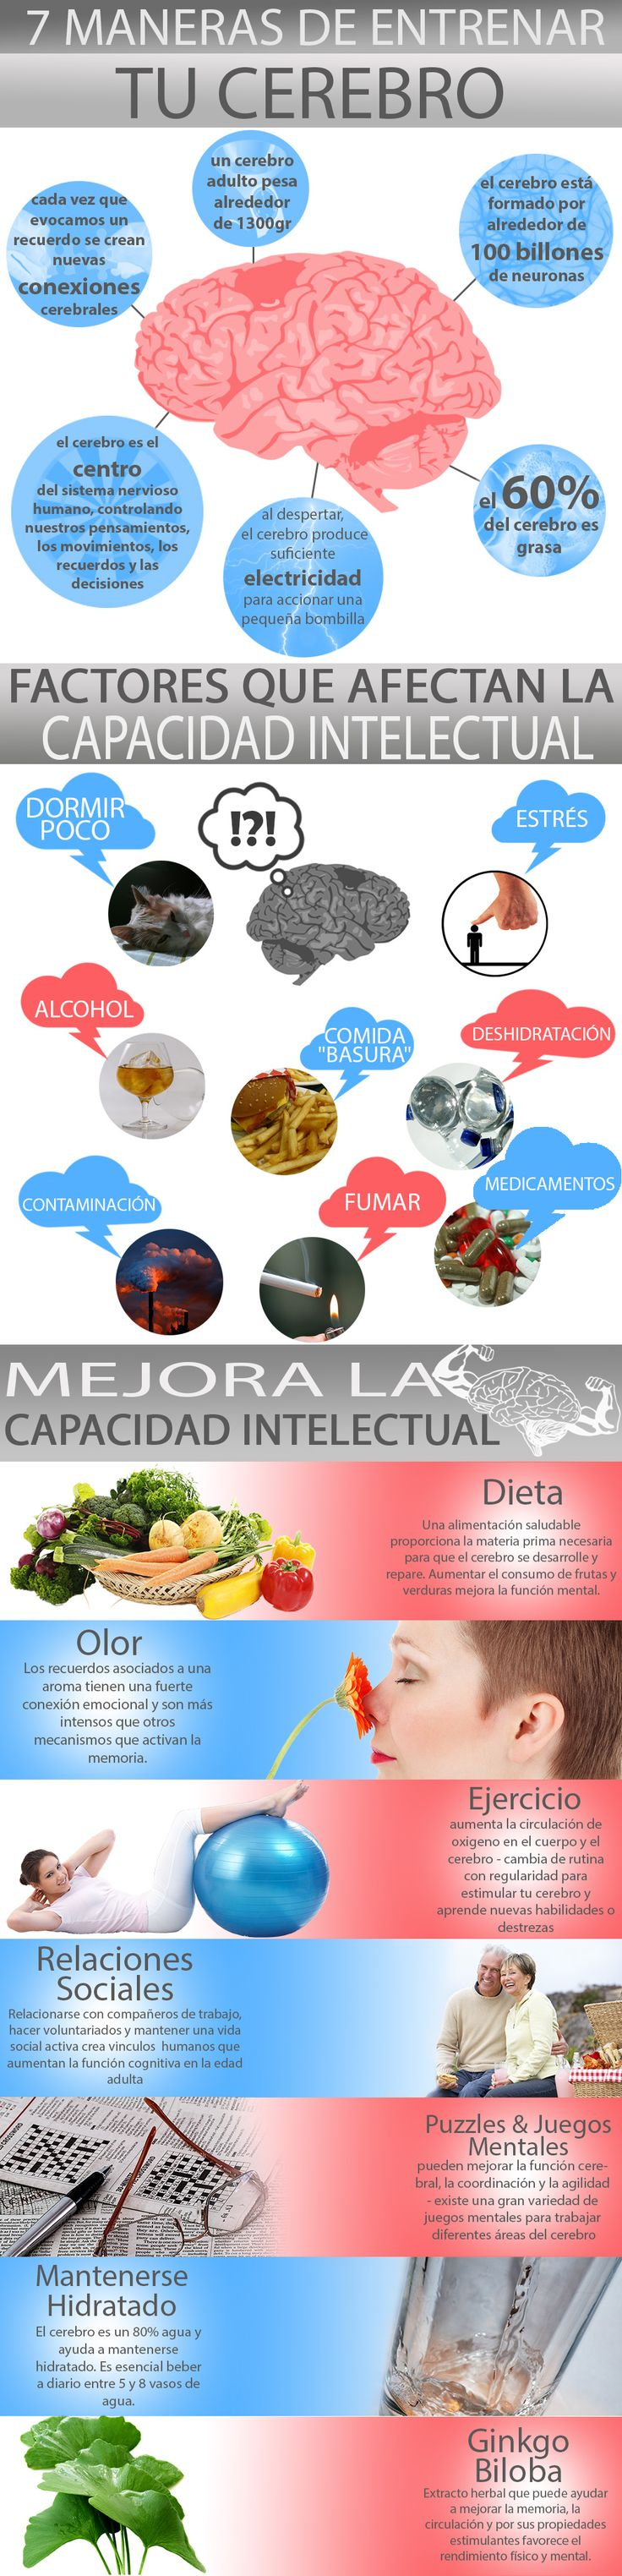 Una vez conocemos el cerebro y su funcionamiento. Existen diferentes formas de entrenarlo para mejorar o potenciar así sus capacidades. Infografía - 7 Maneras de entrenar tu cerebro. (2017). Simply Supplements. Retrieved 19 May 2017, from https://www.simplysupplements.es/articles/286/infografia-7-maneras-de-entrenar-tu-cerebro/